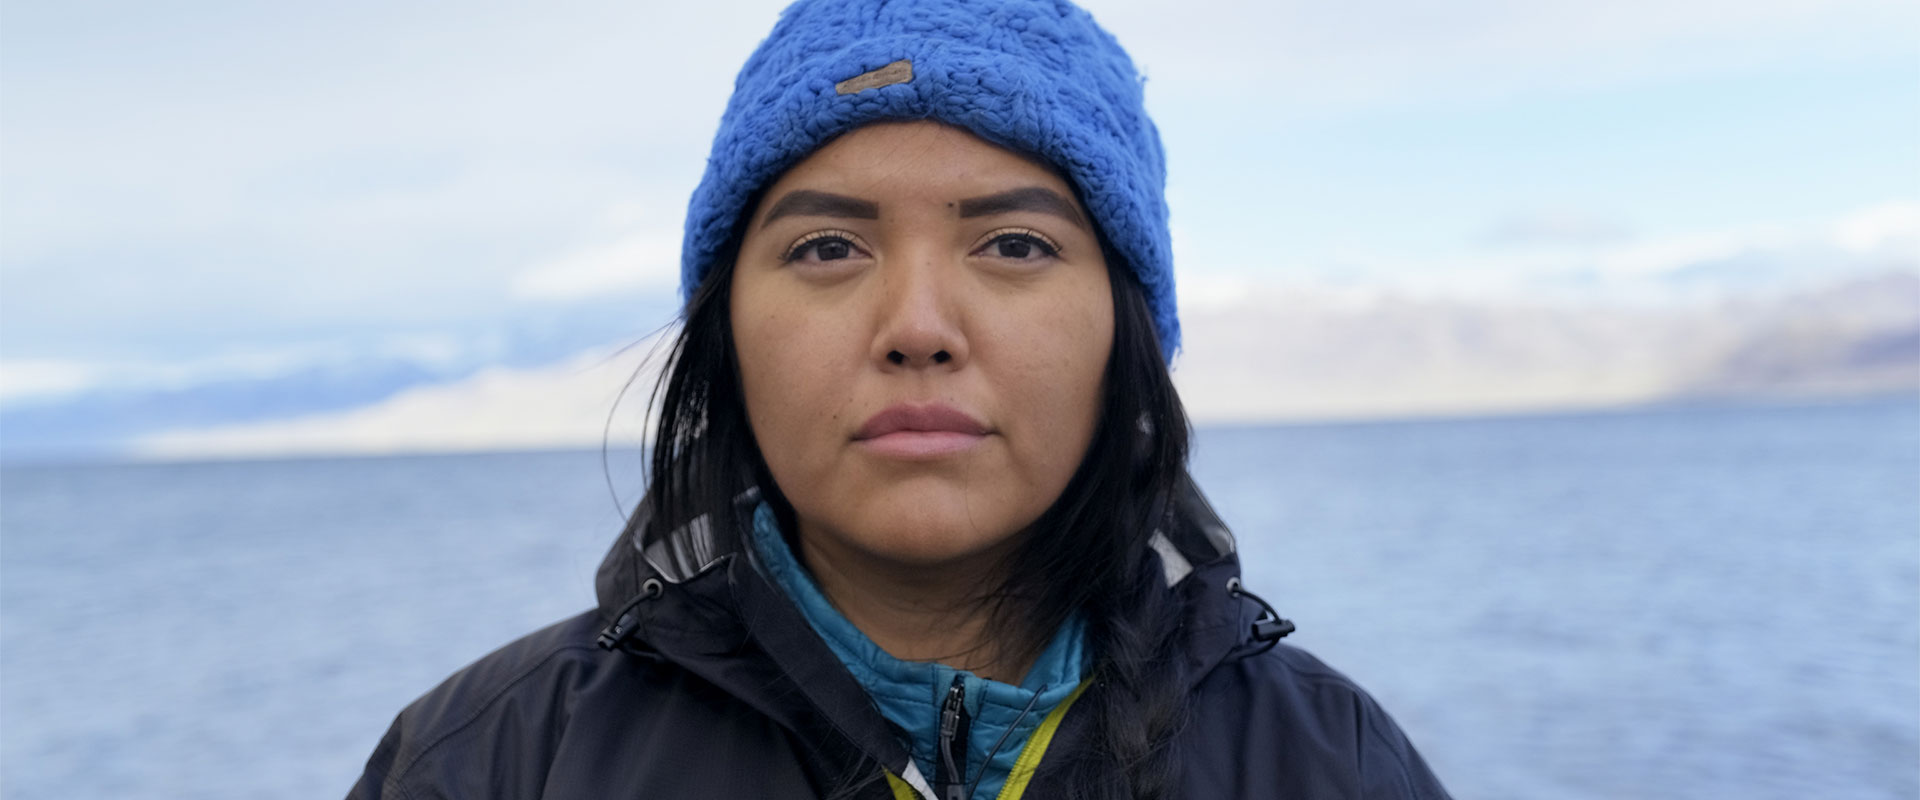 vimff indigenous identity in the outdoors show connection ryan miyamoto title bg